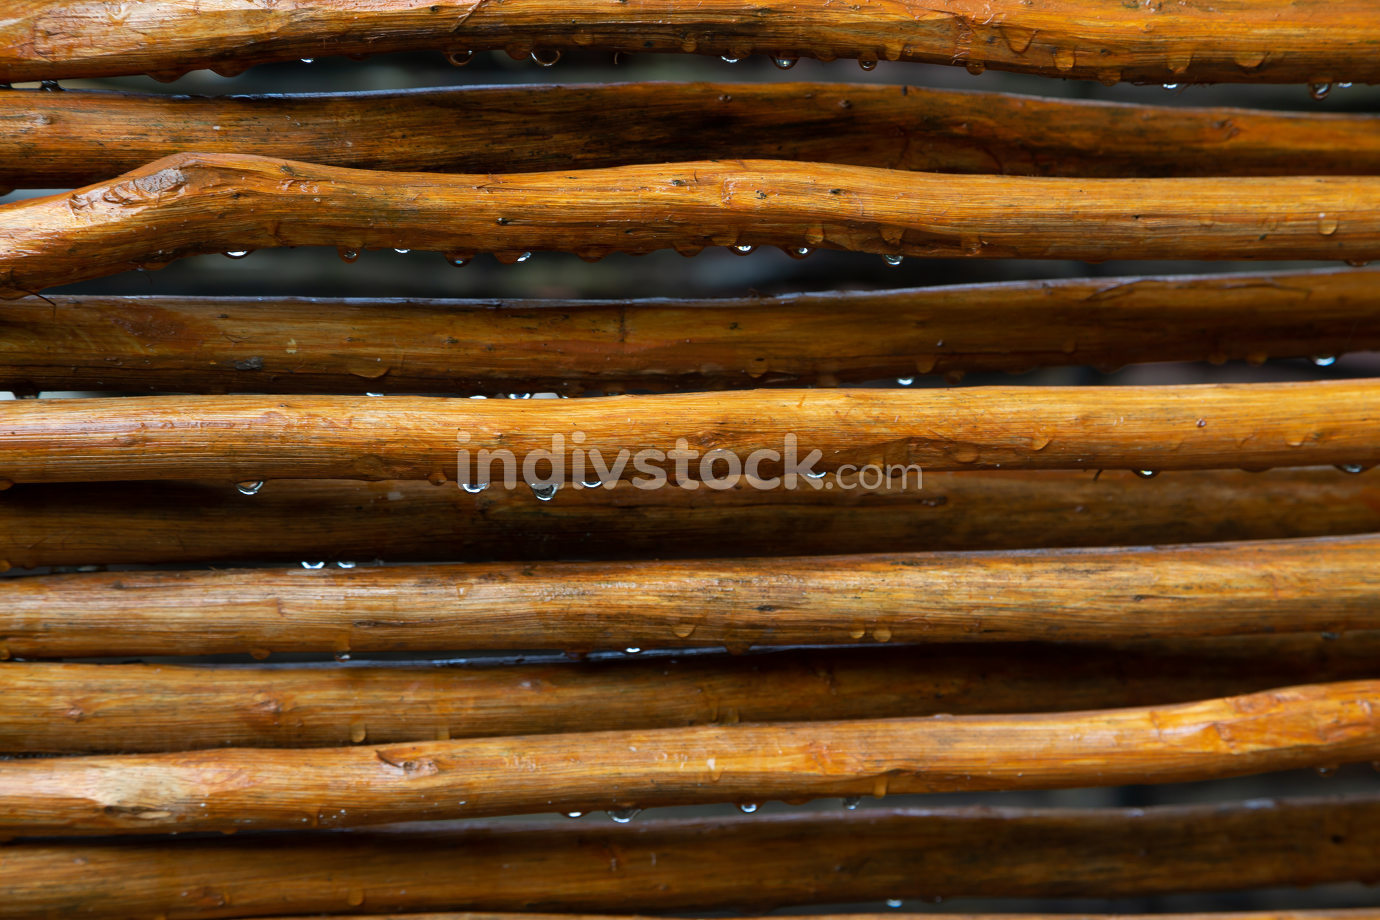 A Background from a wooden mesh or wood